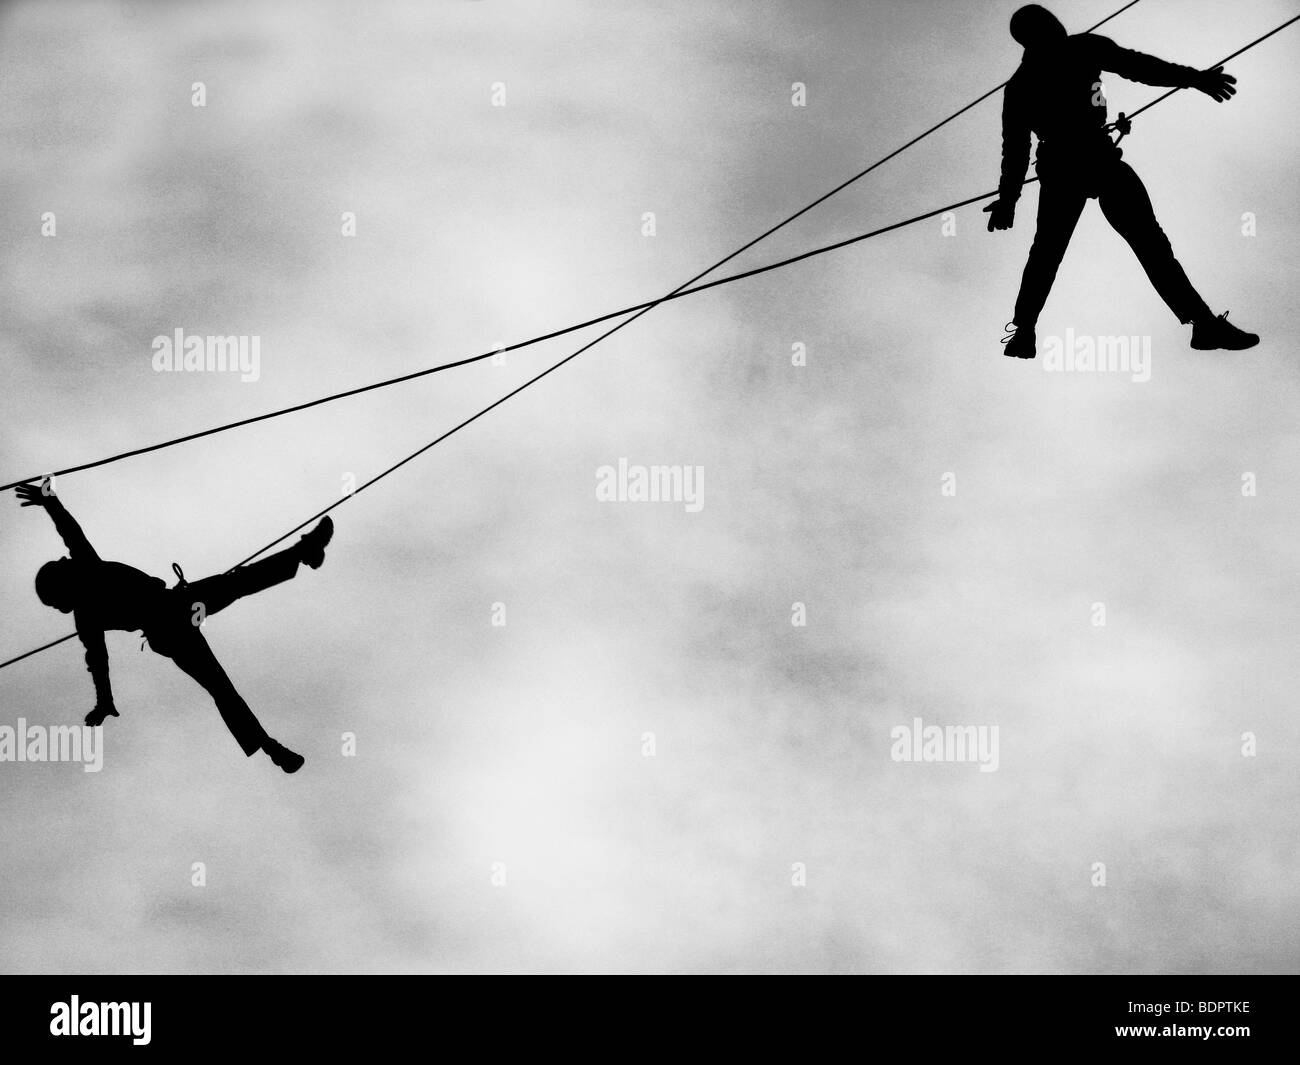 Two figures suspended from high wires - Stock Image